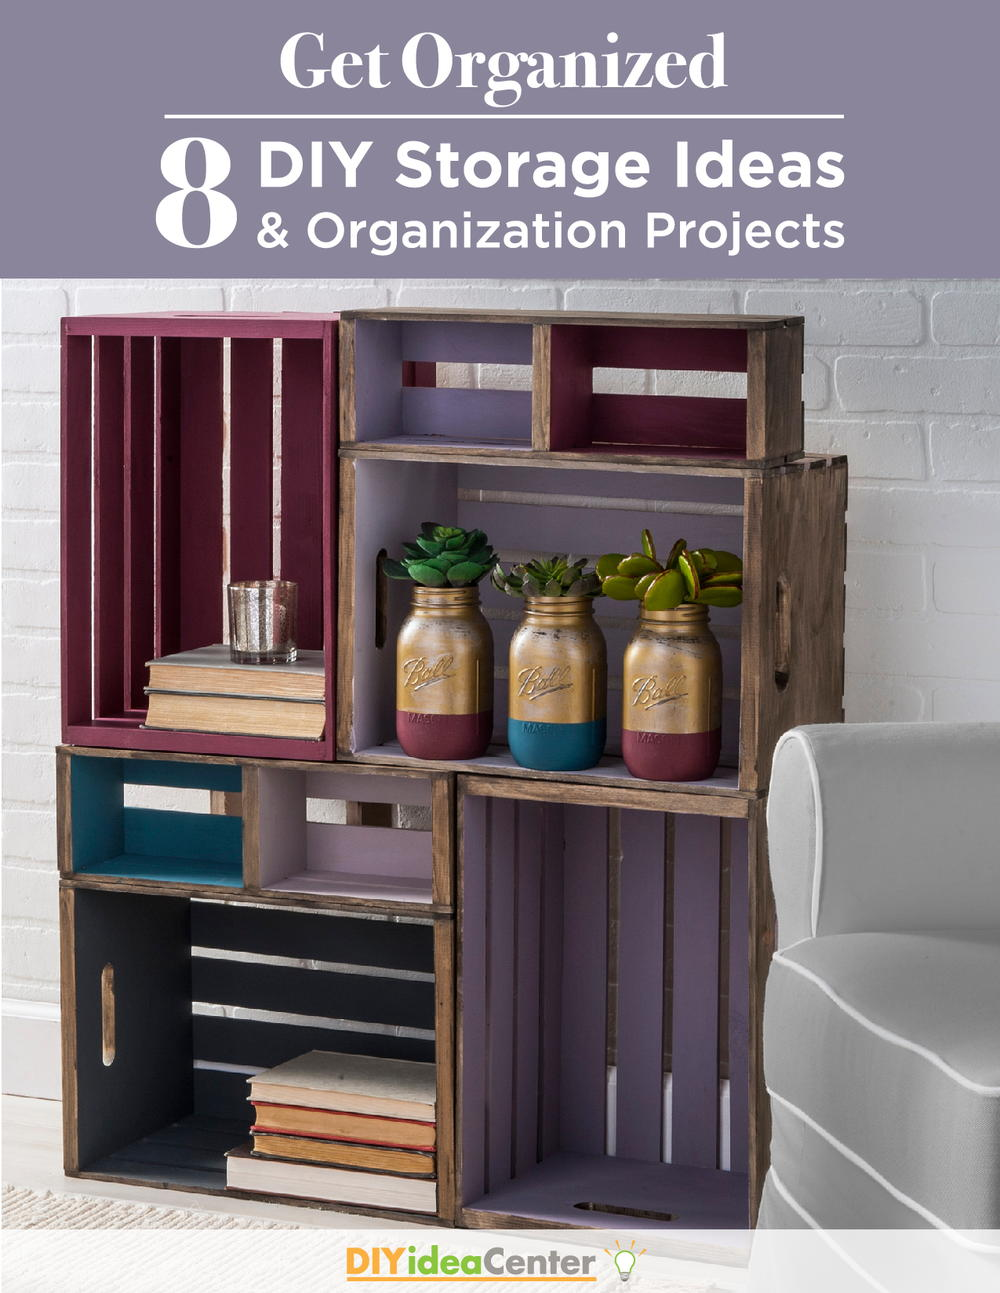 8 Kids Storage And Organization Ideas: Get Organized: 8 DIY Storage Ideas And Organization